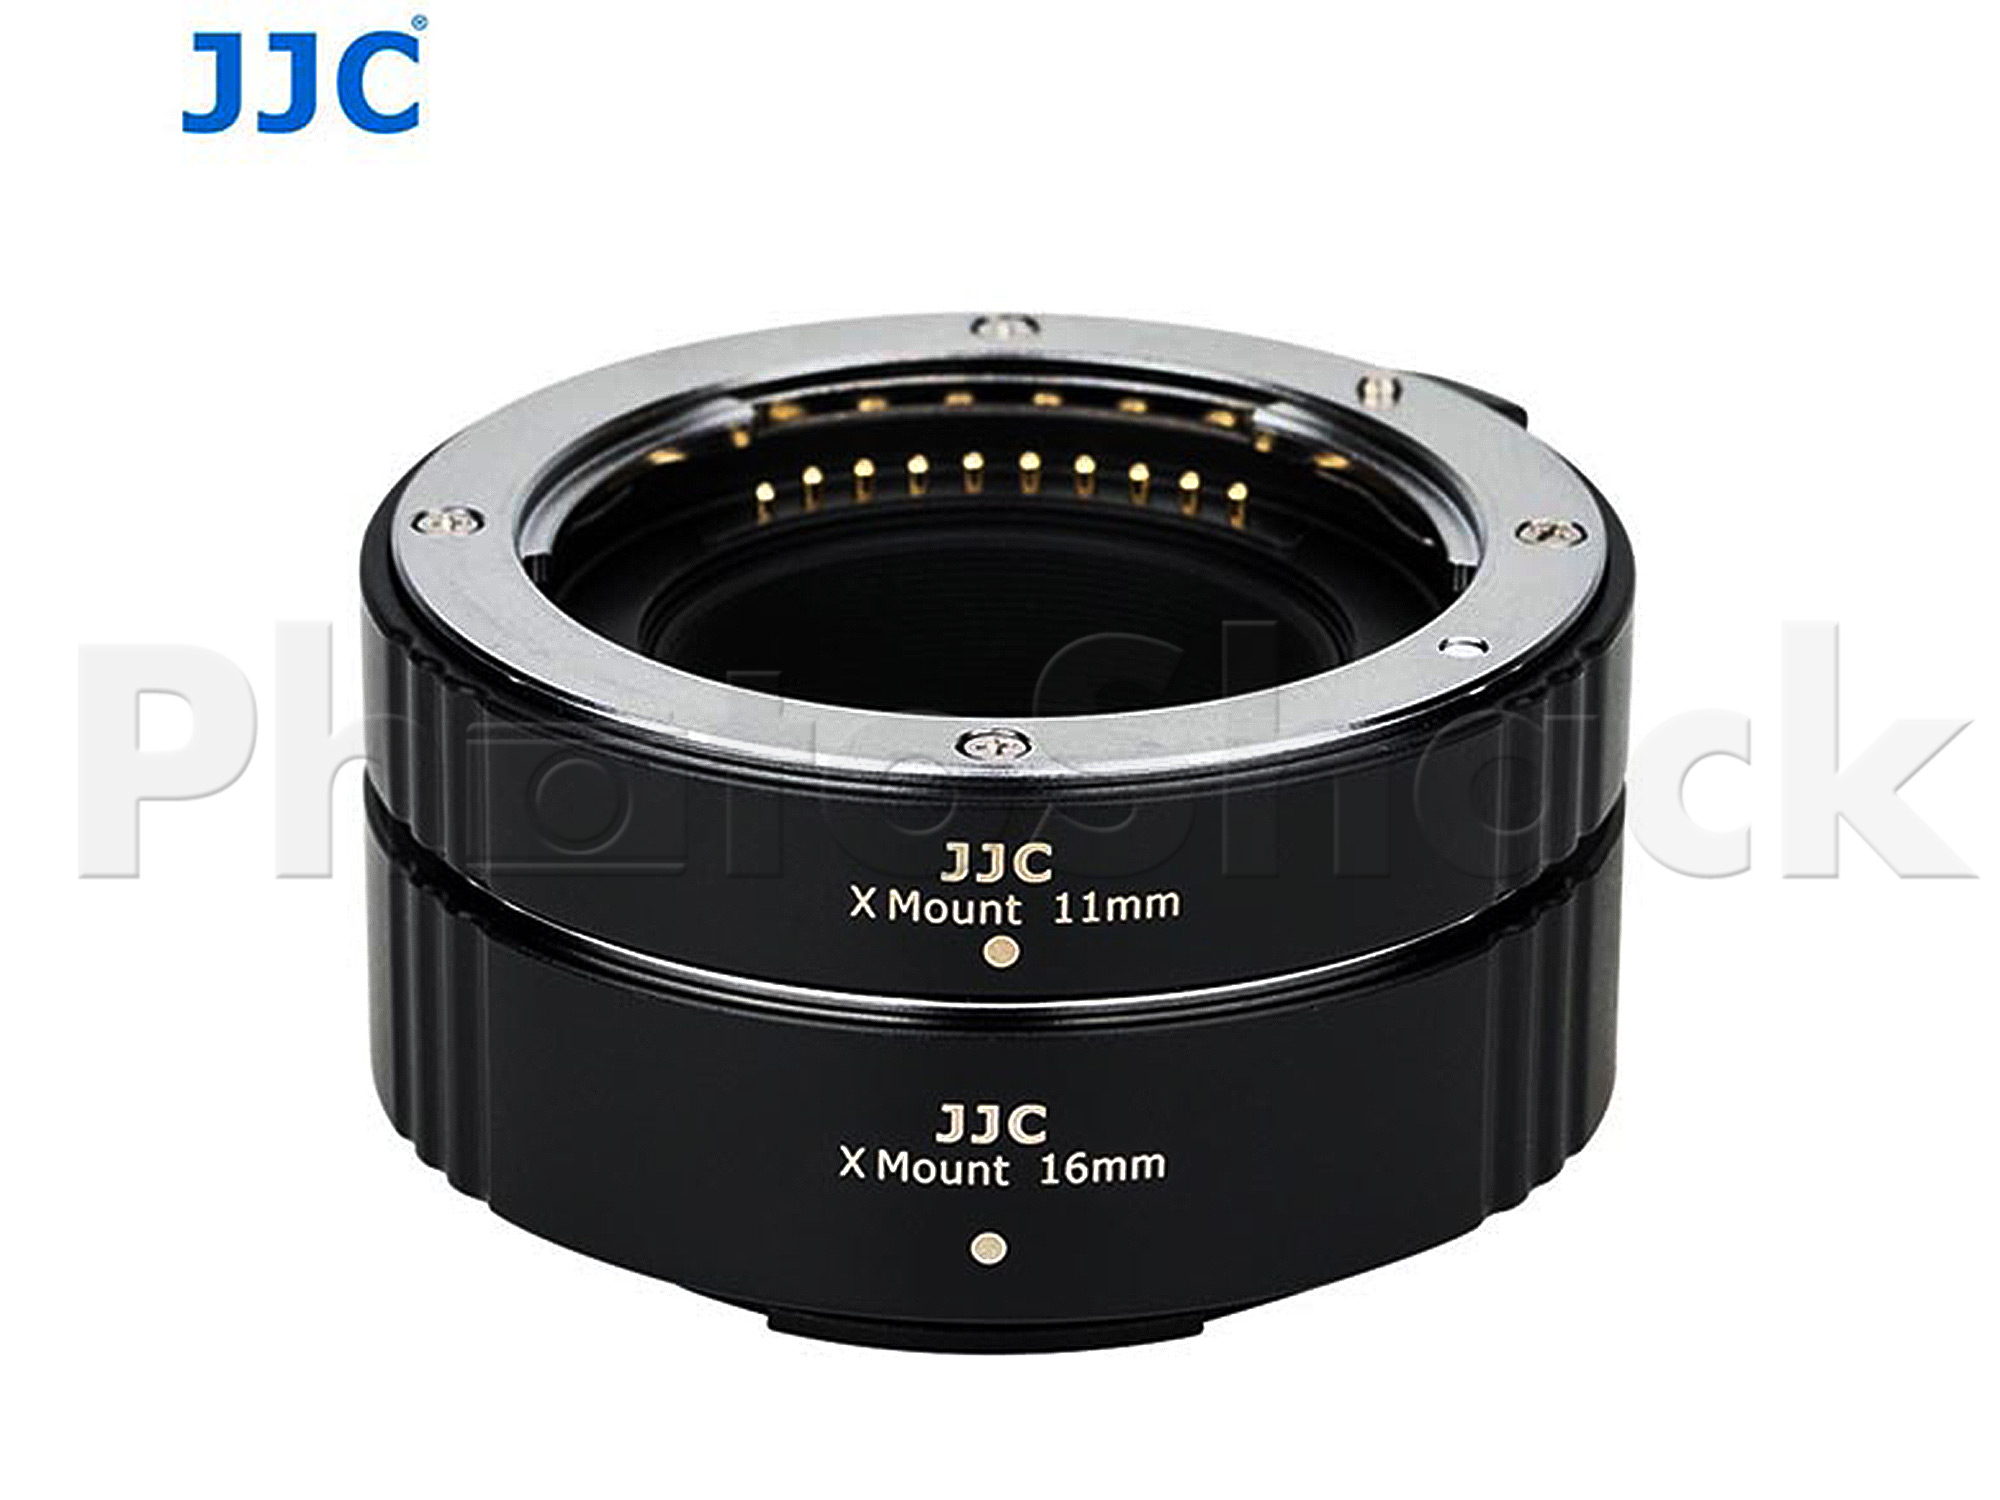 JJC Automatic Extension Tubes for Fuji X Mount